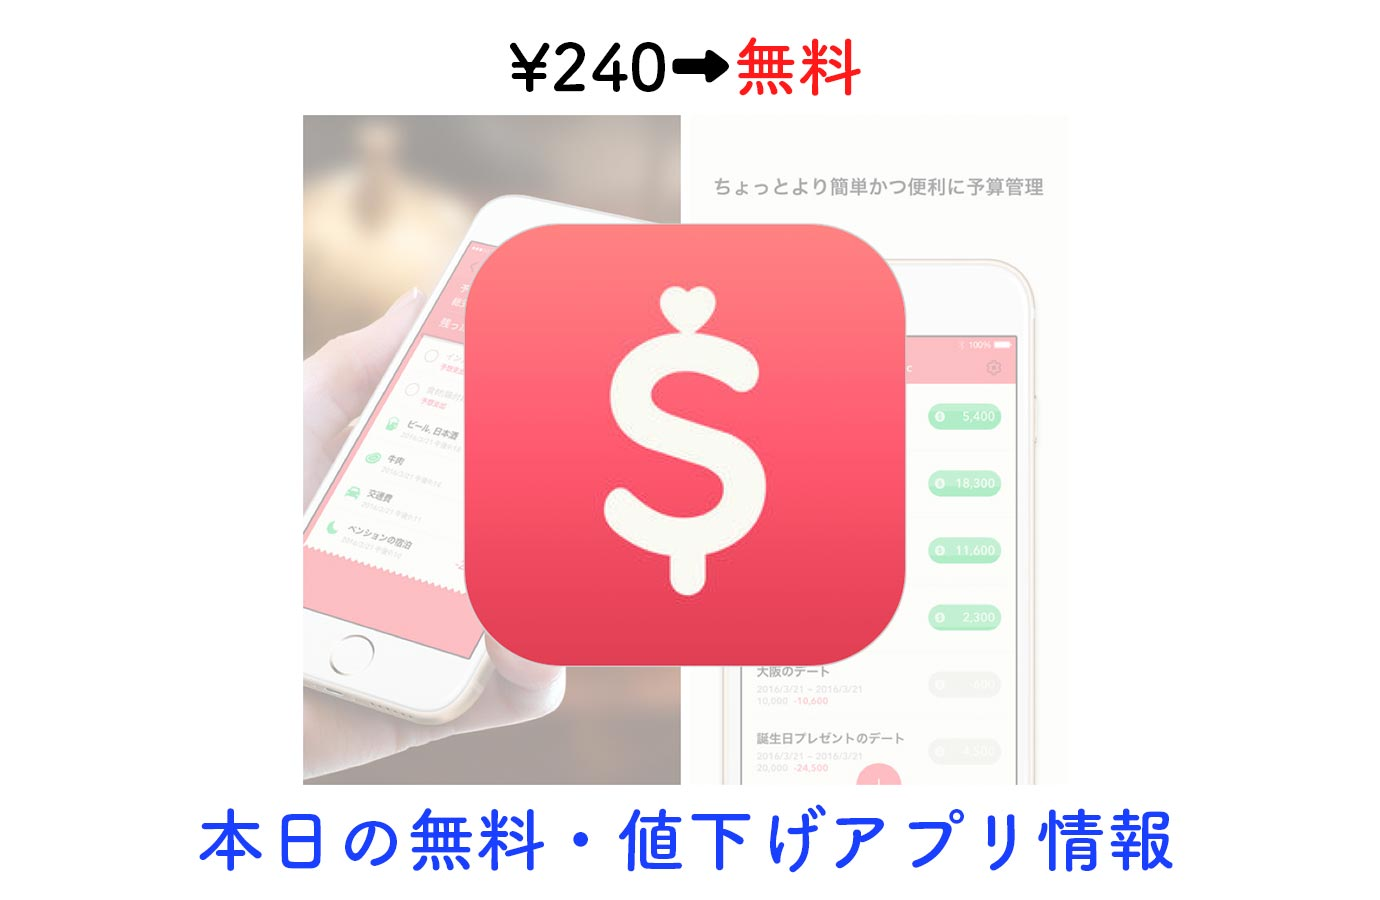 ¥240→無料、予算を決めて支出を管理できる家計簿アプリ「ミニバジェット Pro」など【11/18】本日の無料・値下げアプリ情報